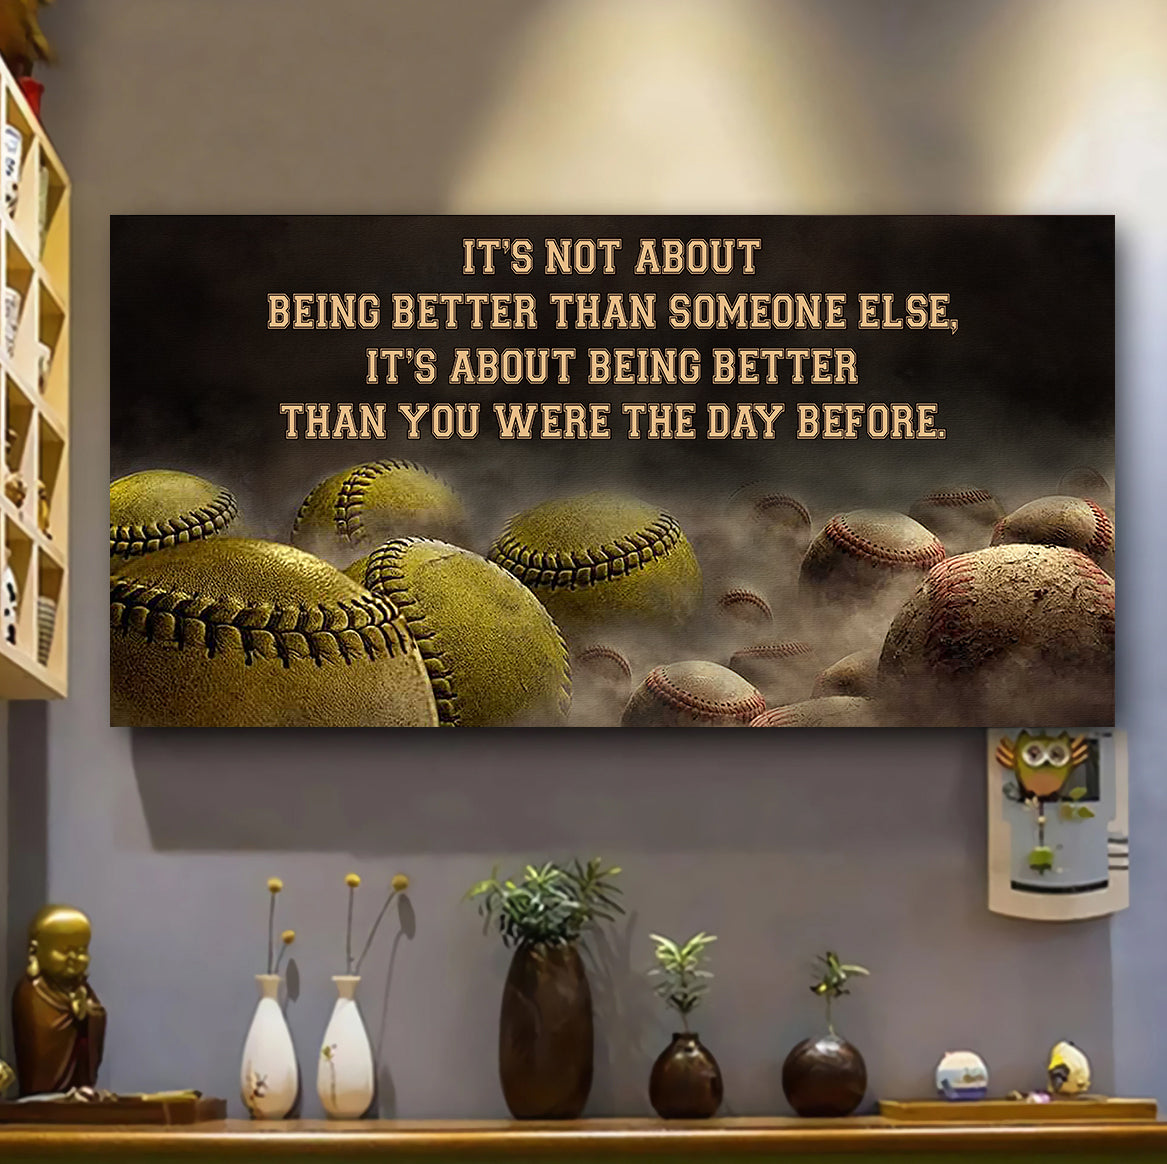 (LP332) Customizable Baseball & Softball Poster, Canvas - It's not about being better than someone else  - FREE SHIPPING ON ORDERS OVER $75